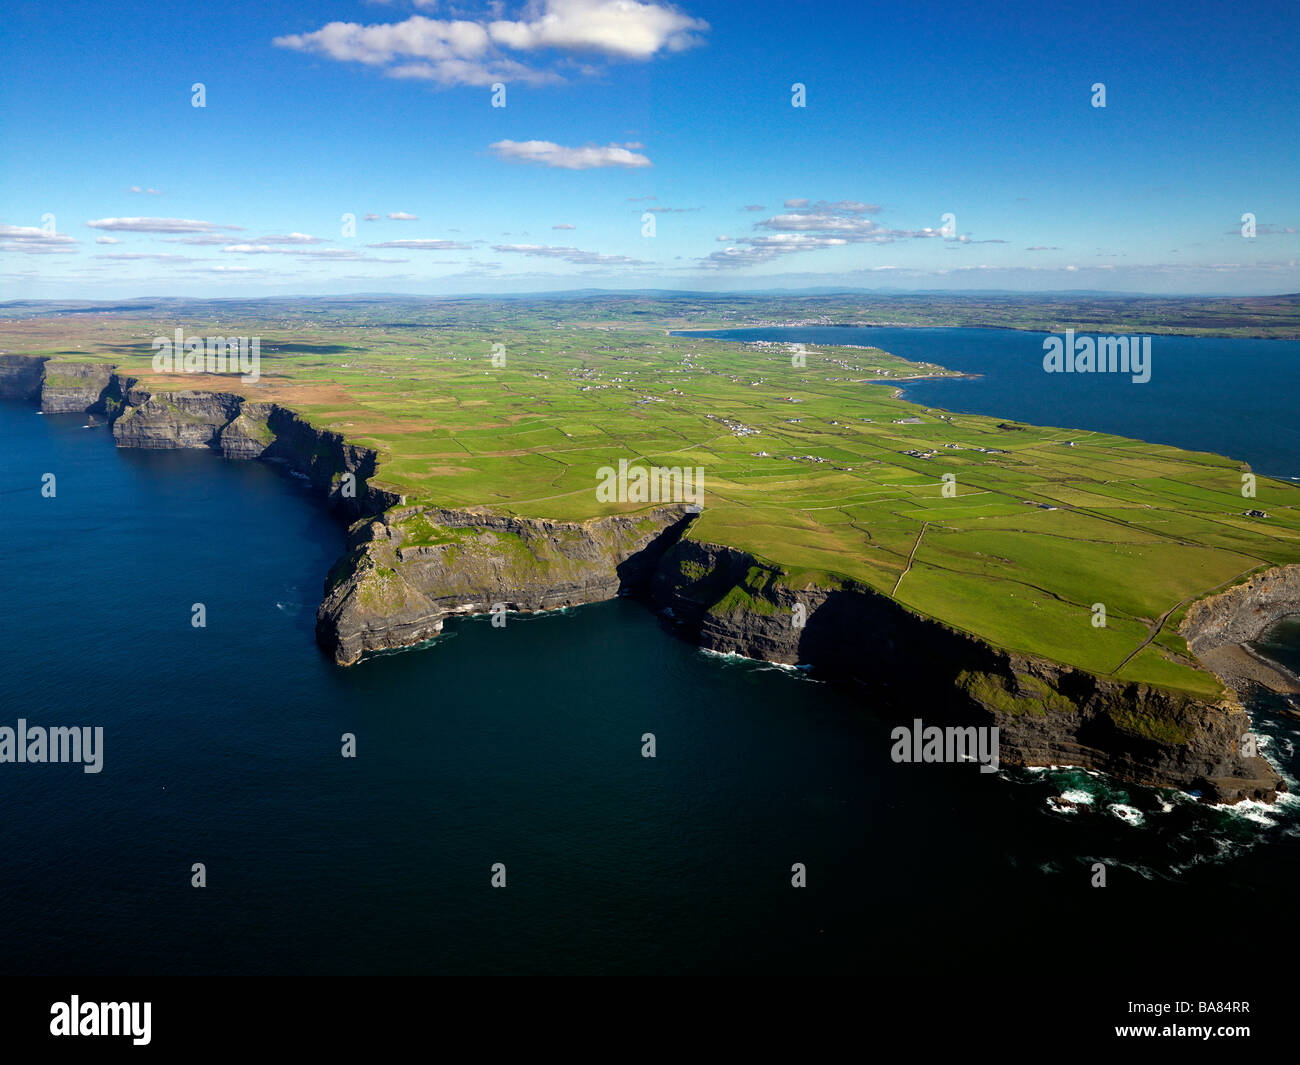 Cliffs of Moher Co. Clare Aerial Ireland. - Stock Image